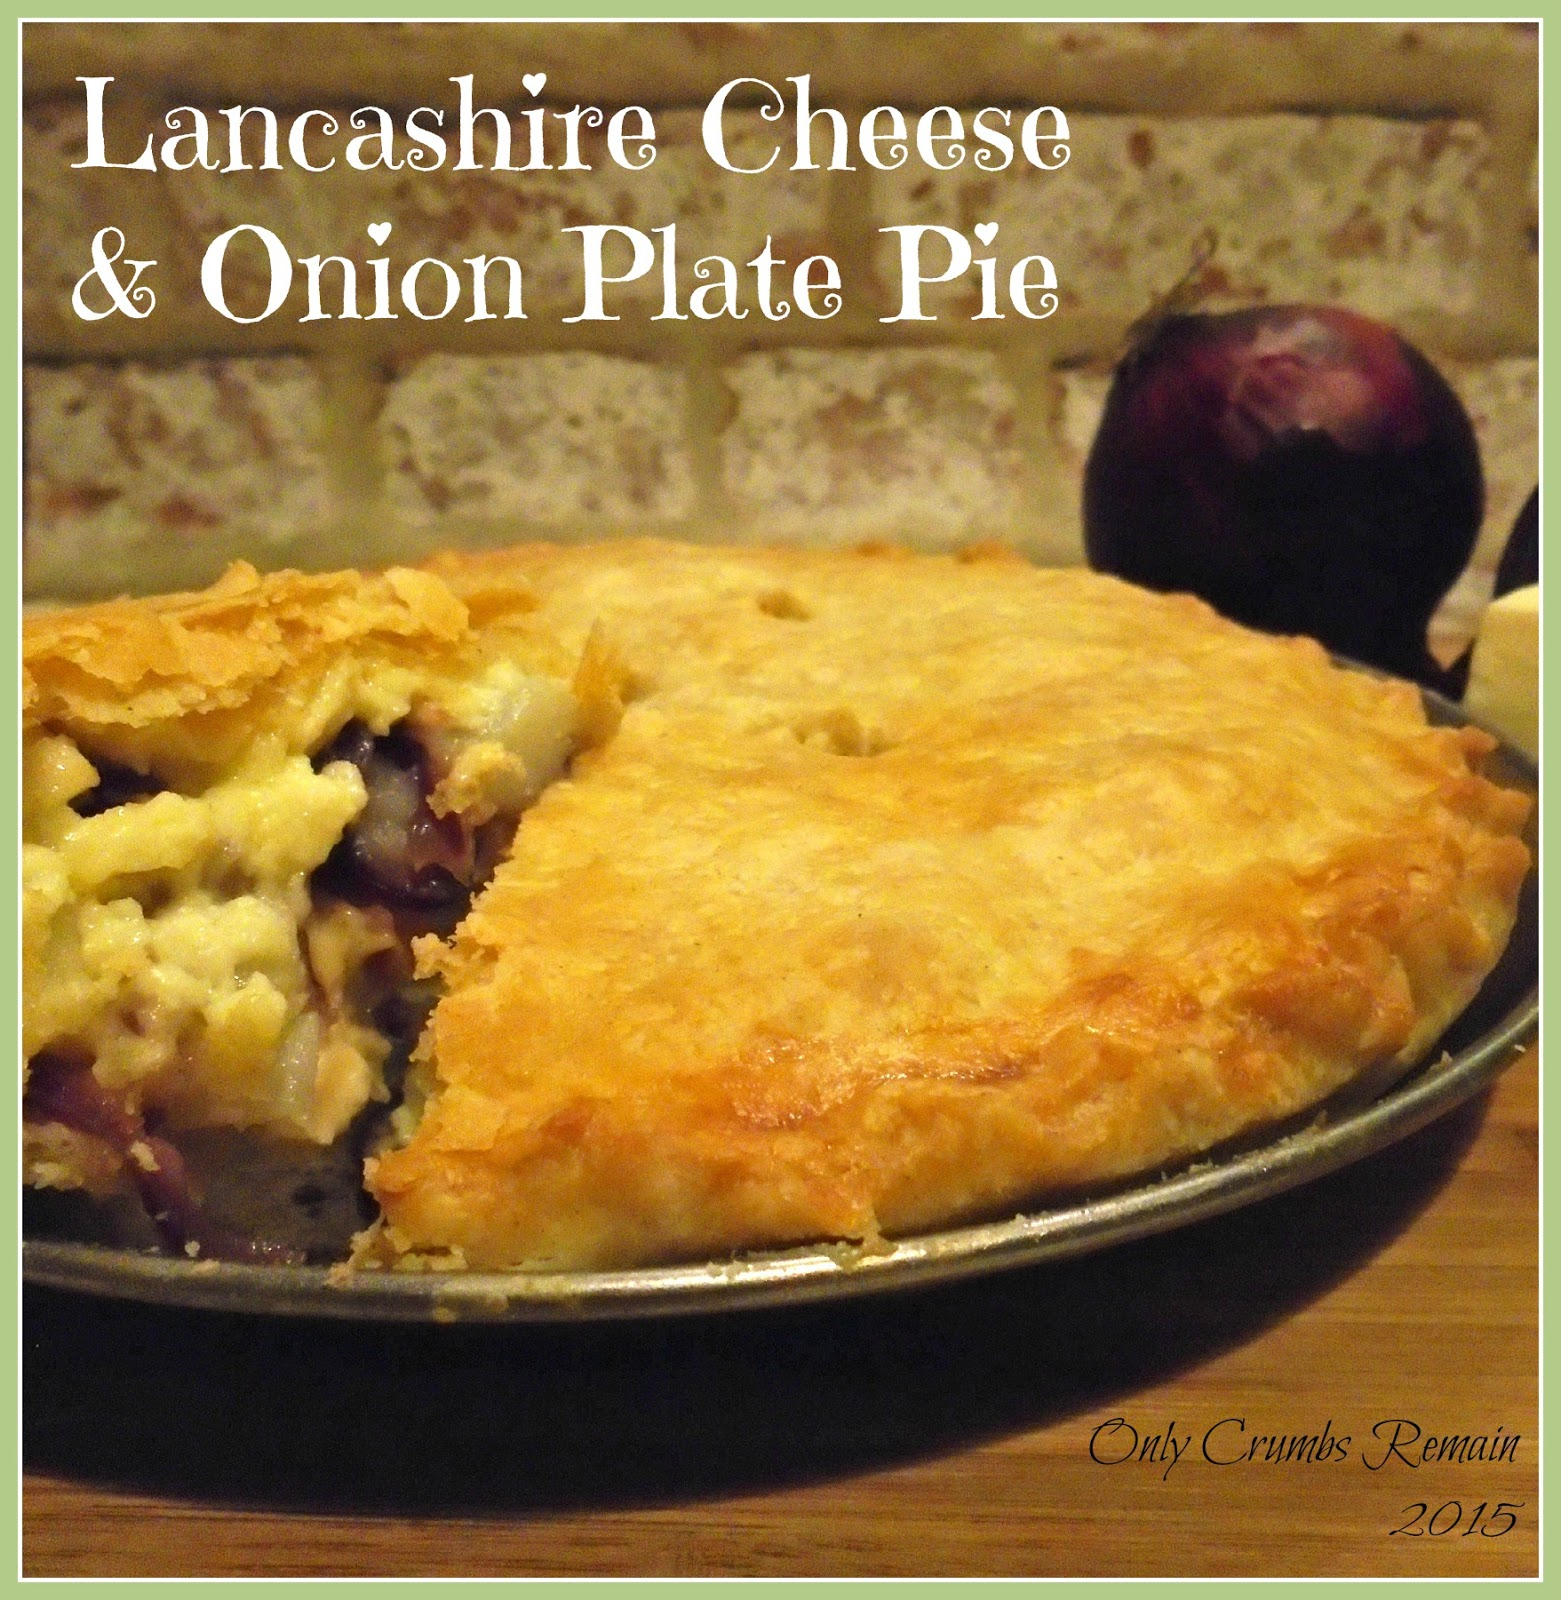 Lancashire Cheese and Onion Plate Pie & Only Crumbs Remain: Lancashire Cheese u0026 Onion Plate Pie